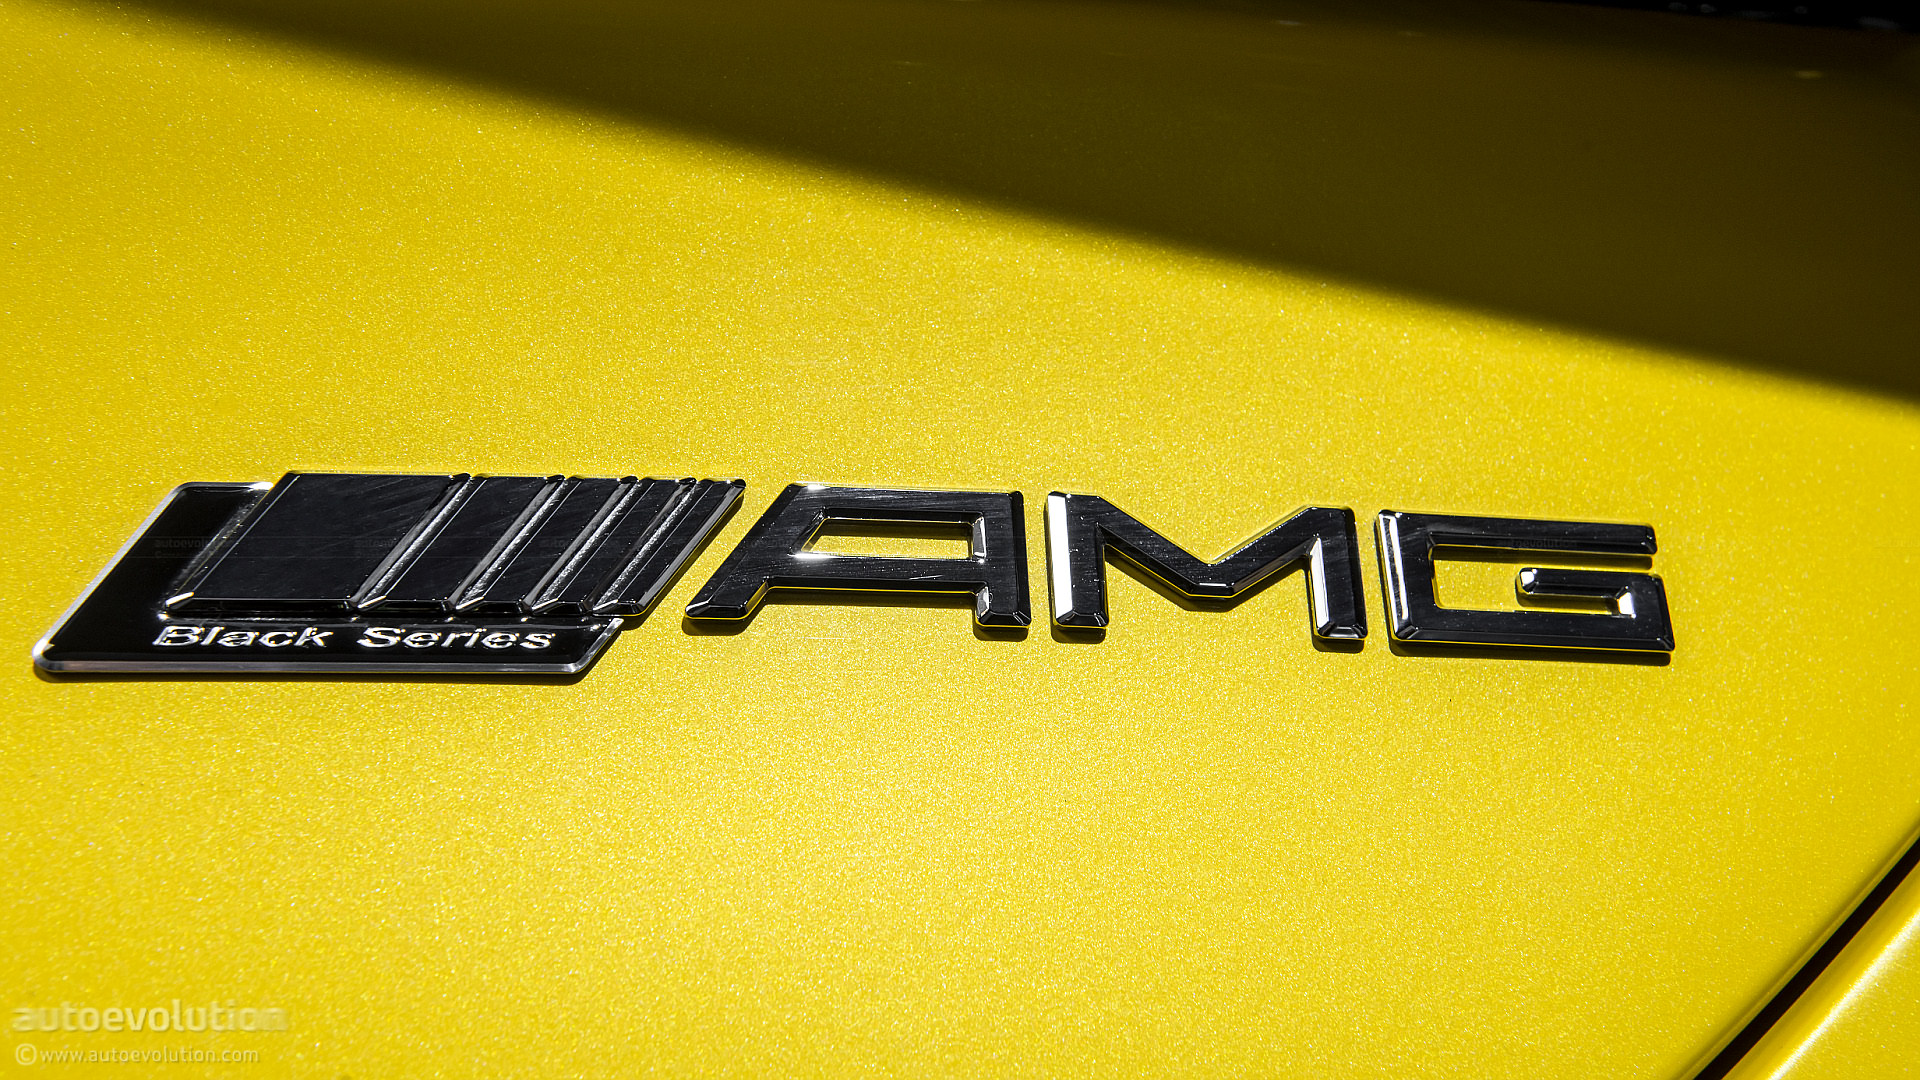 Sls Black Series >> 2014 Mercedes SLS AMG Black Series US Pricing Announced - autoevolution